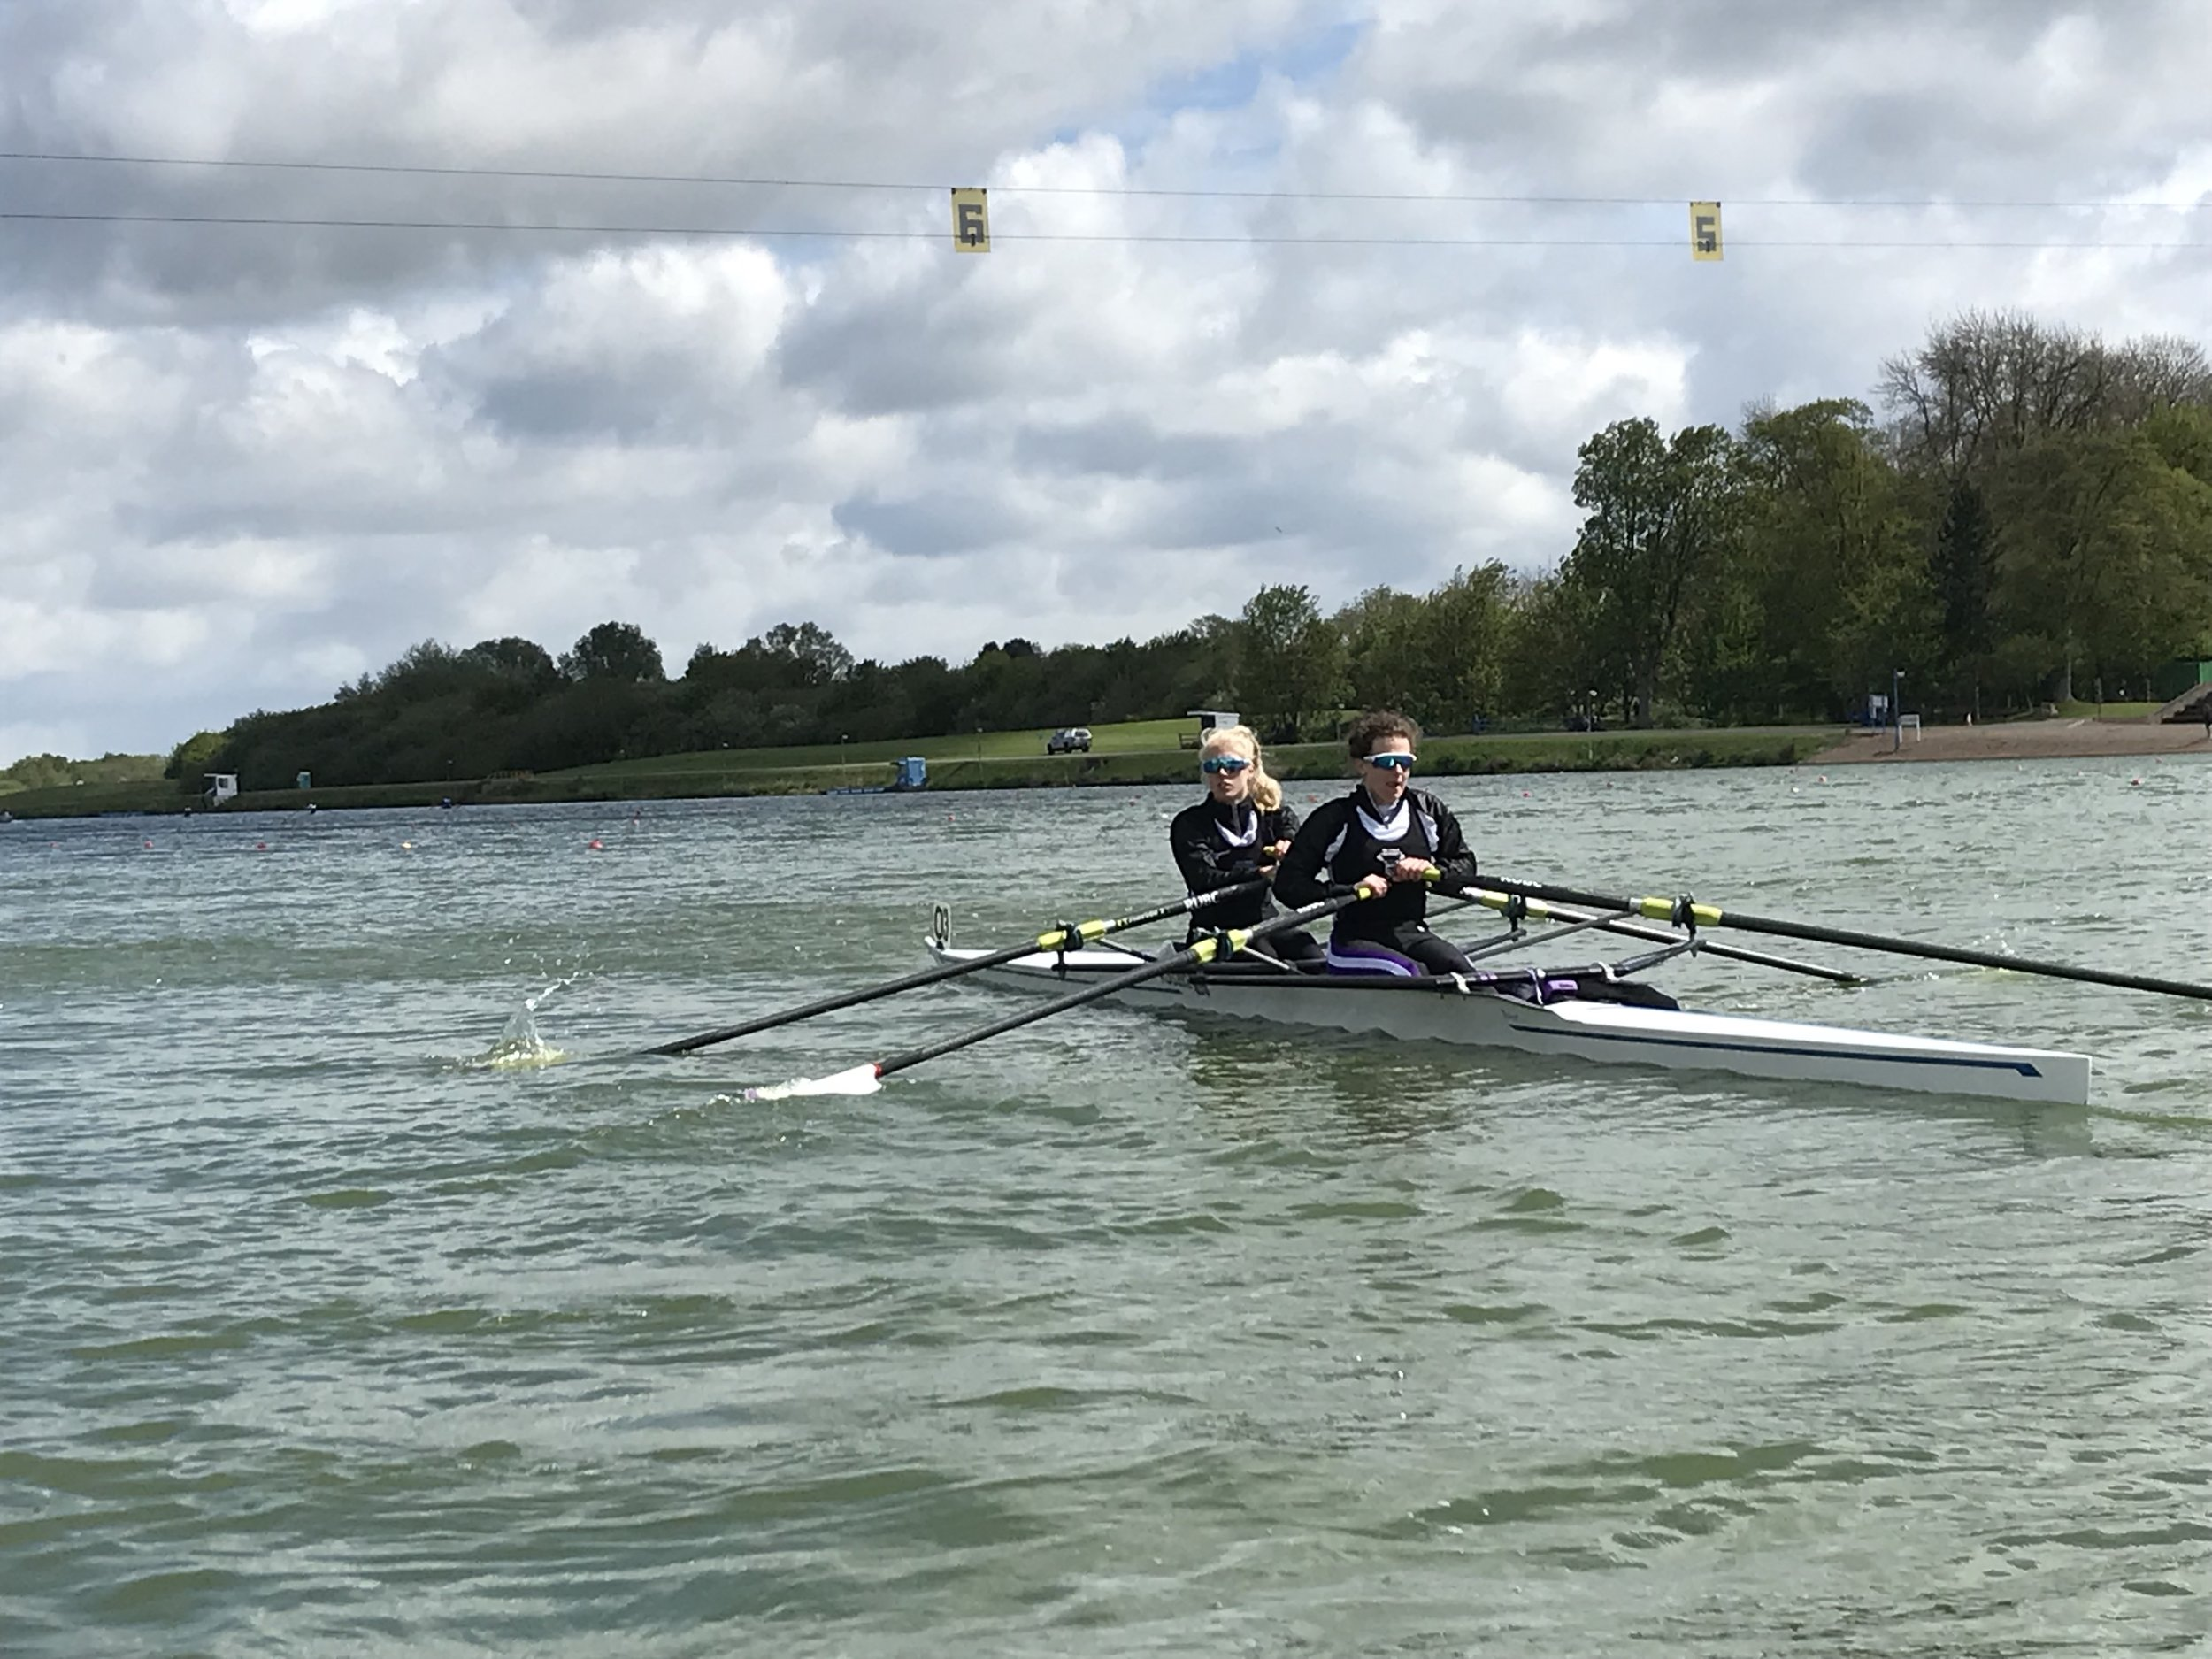 Franky and Vic in the Lightweight 2x boating for their rep.